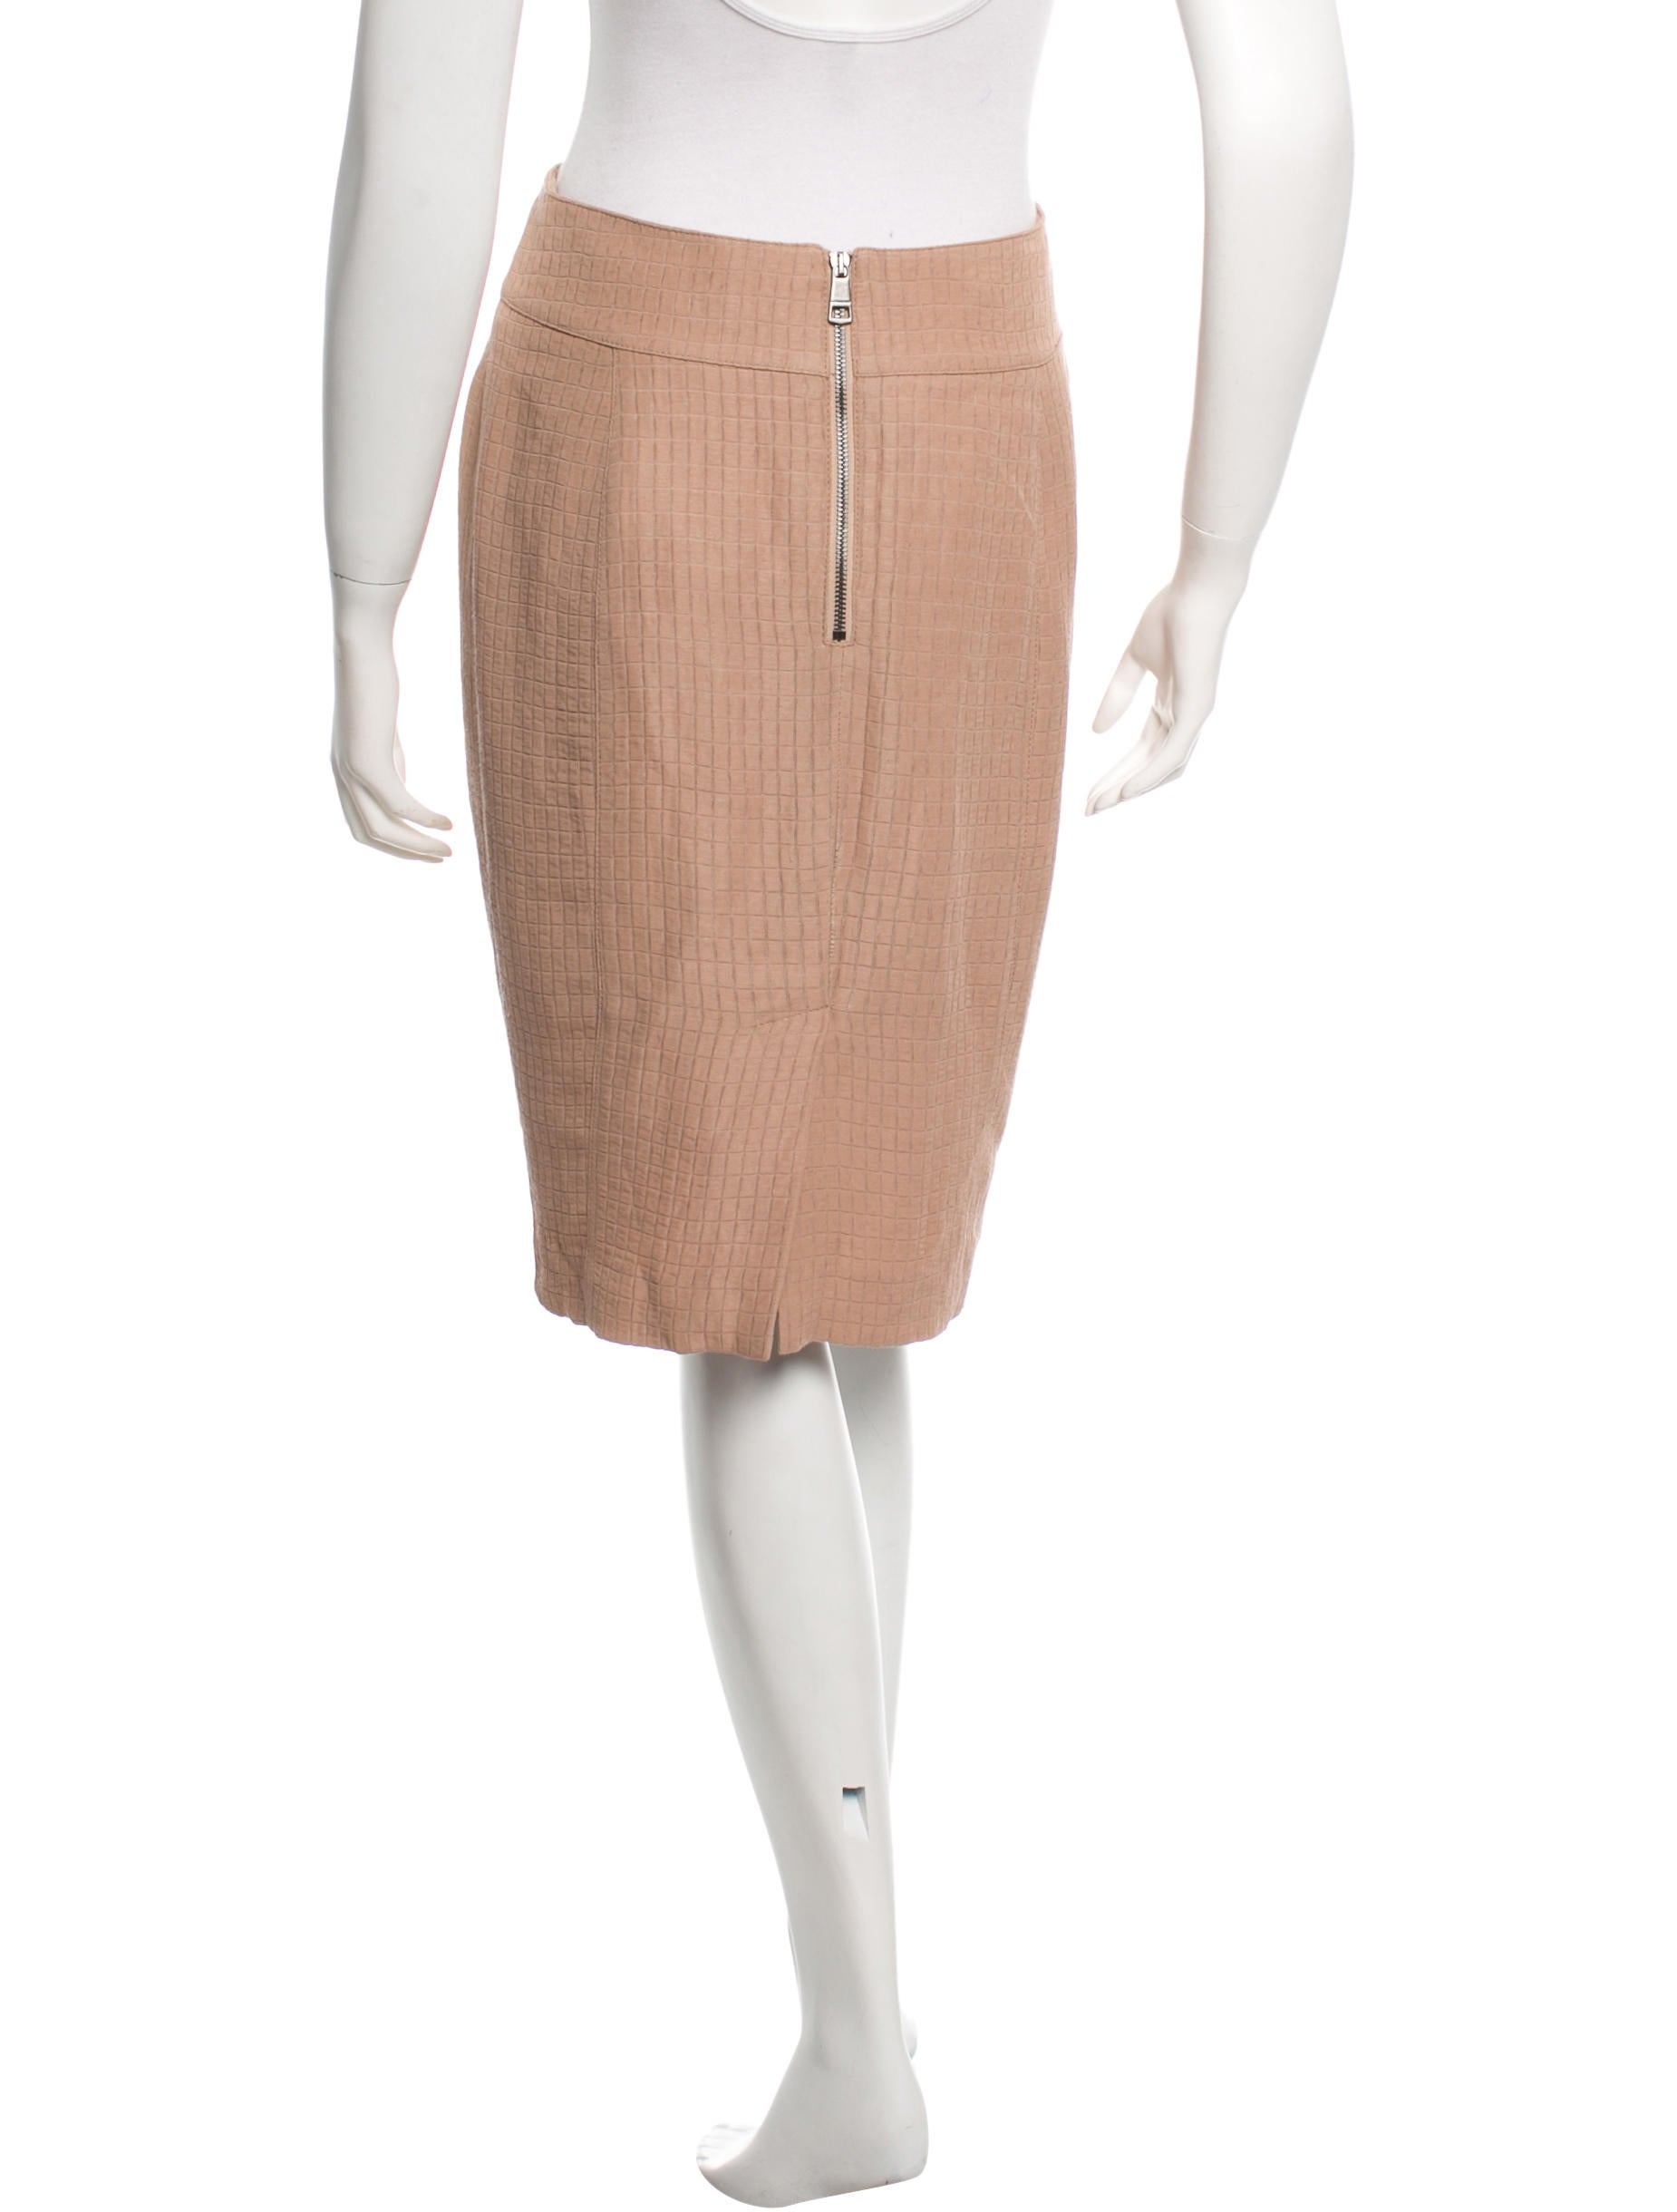 burberry geometric patterned pencil skirt clothing